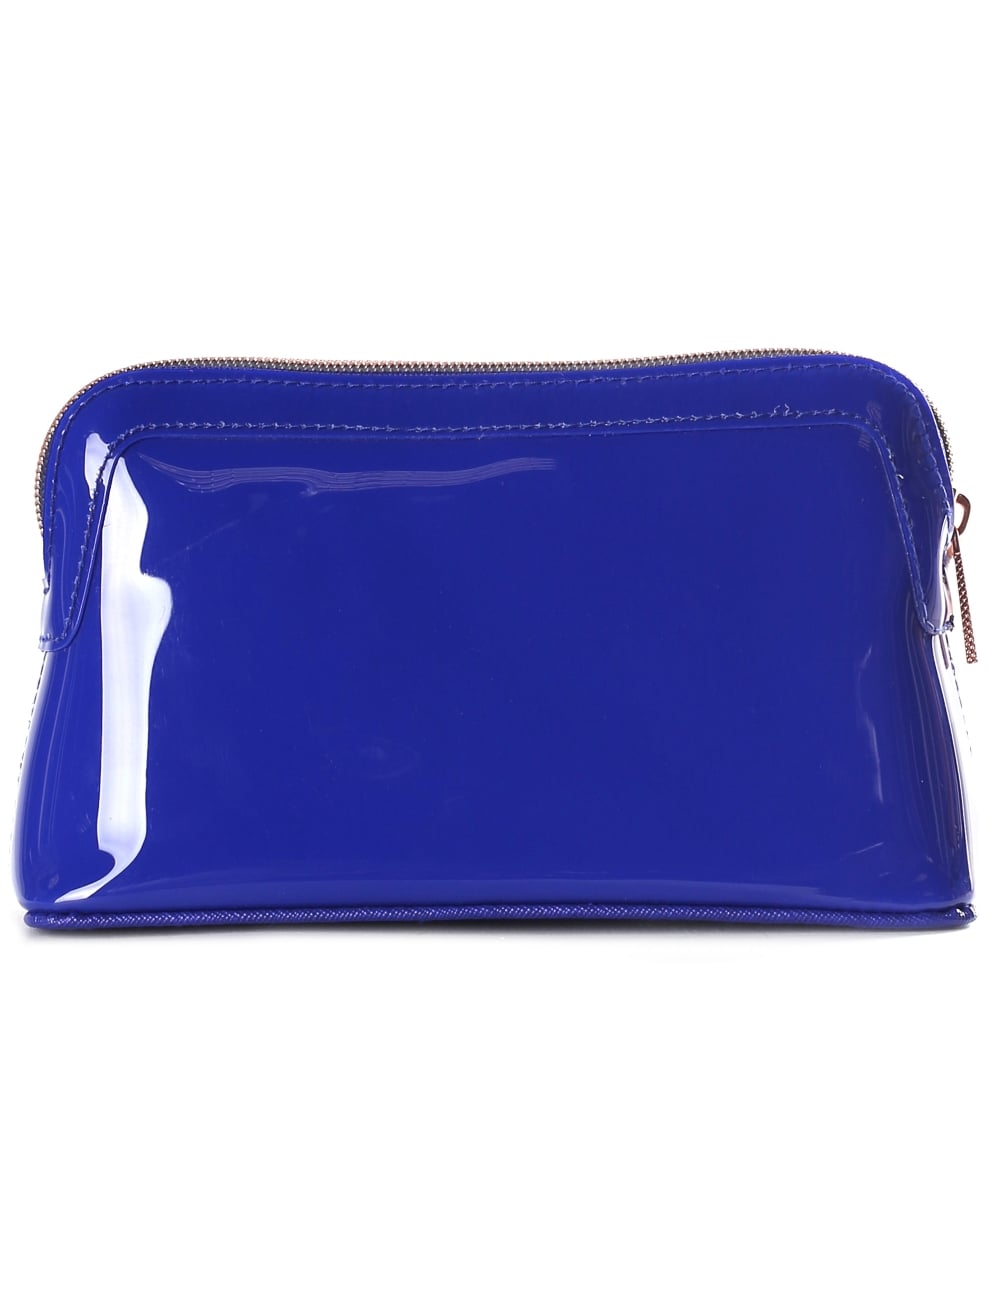 a85ce4d83 Ted Baker Women s Julis Bow Triangle Make Up Bag